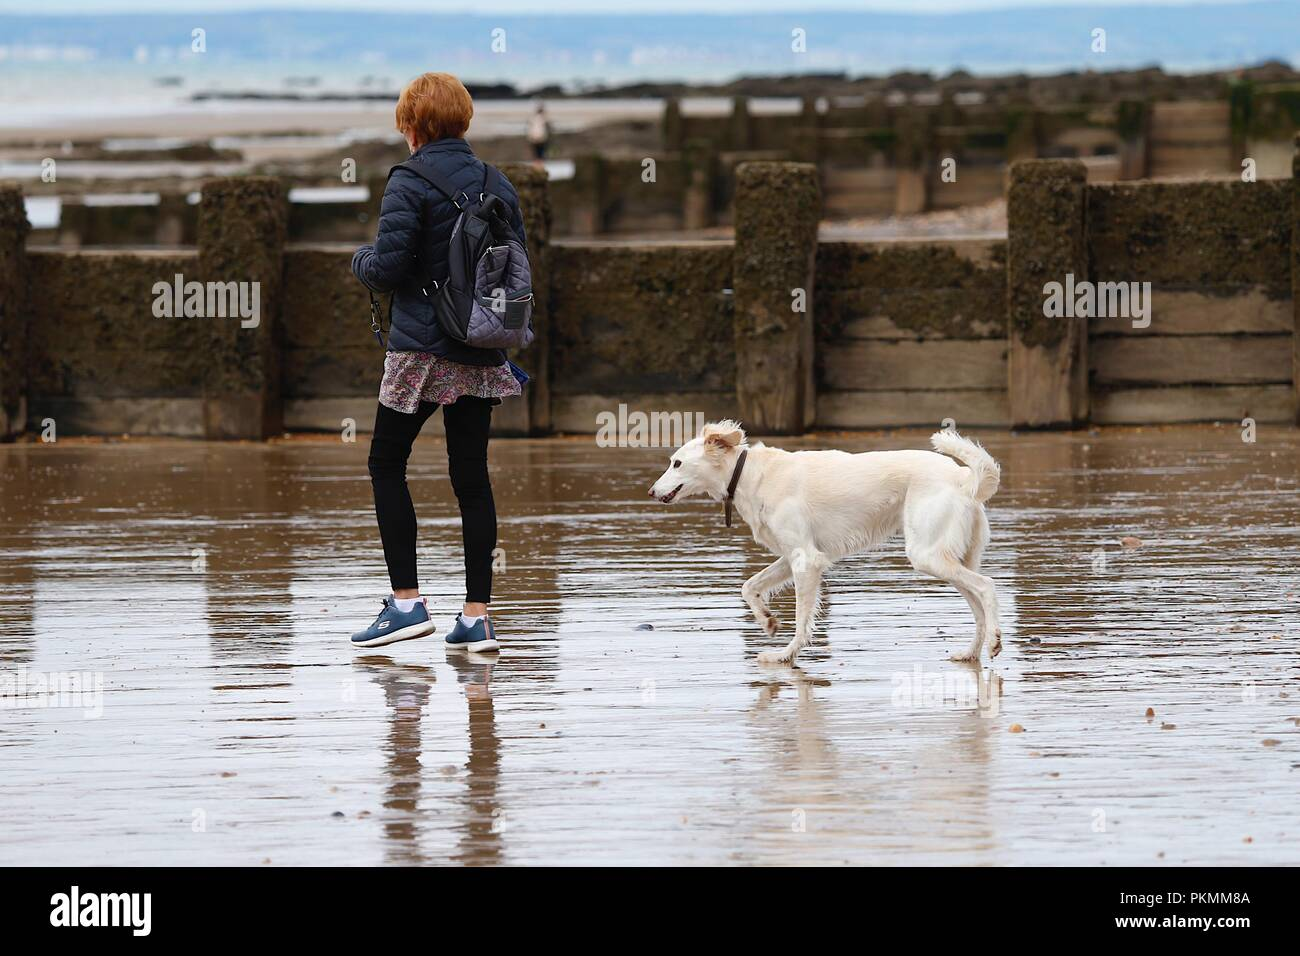 Hastings, East Sussex, UK. 14th Sep, 2018. UK Weather: Cloudy with a drop in temperature but pleasant morning in the seaside town of Hastings. Red head woman walking with her dog on the beach. © Paul Lawrenson 2018, Photo Credit: Paul Lawrenson / Alamy Live News - Stock Image